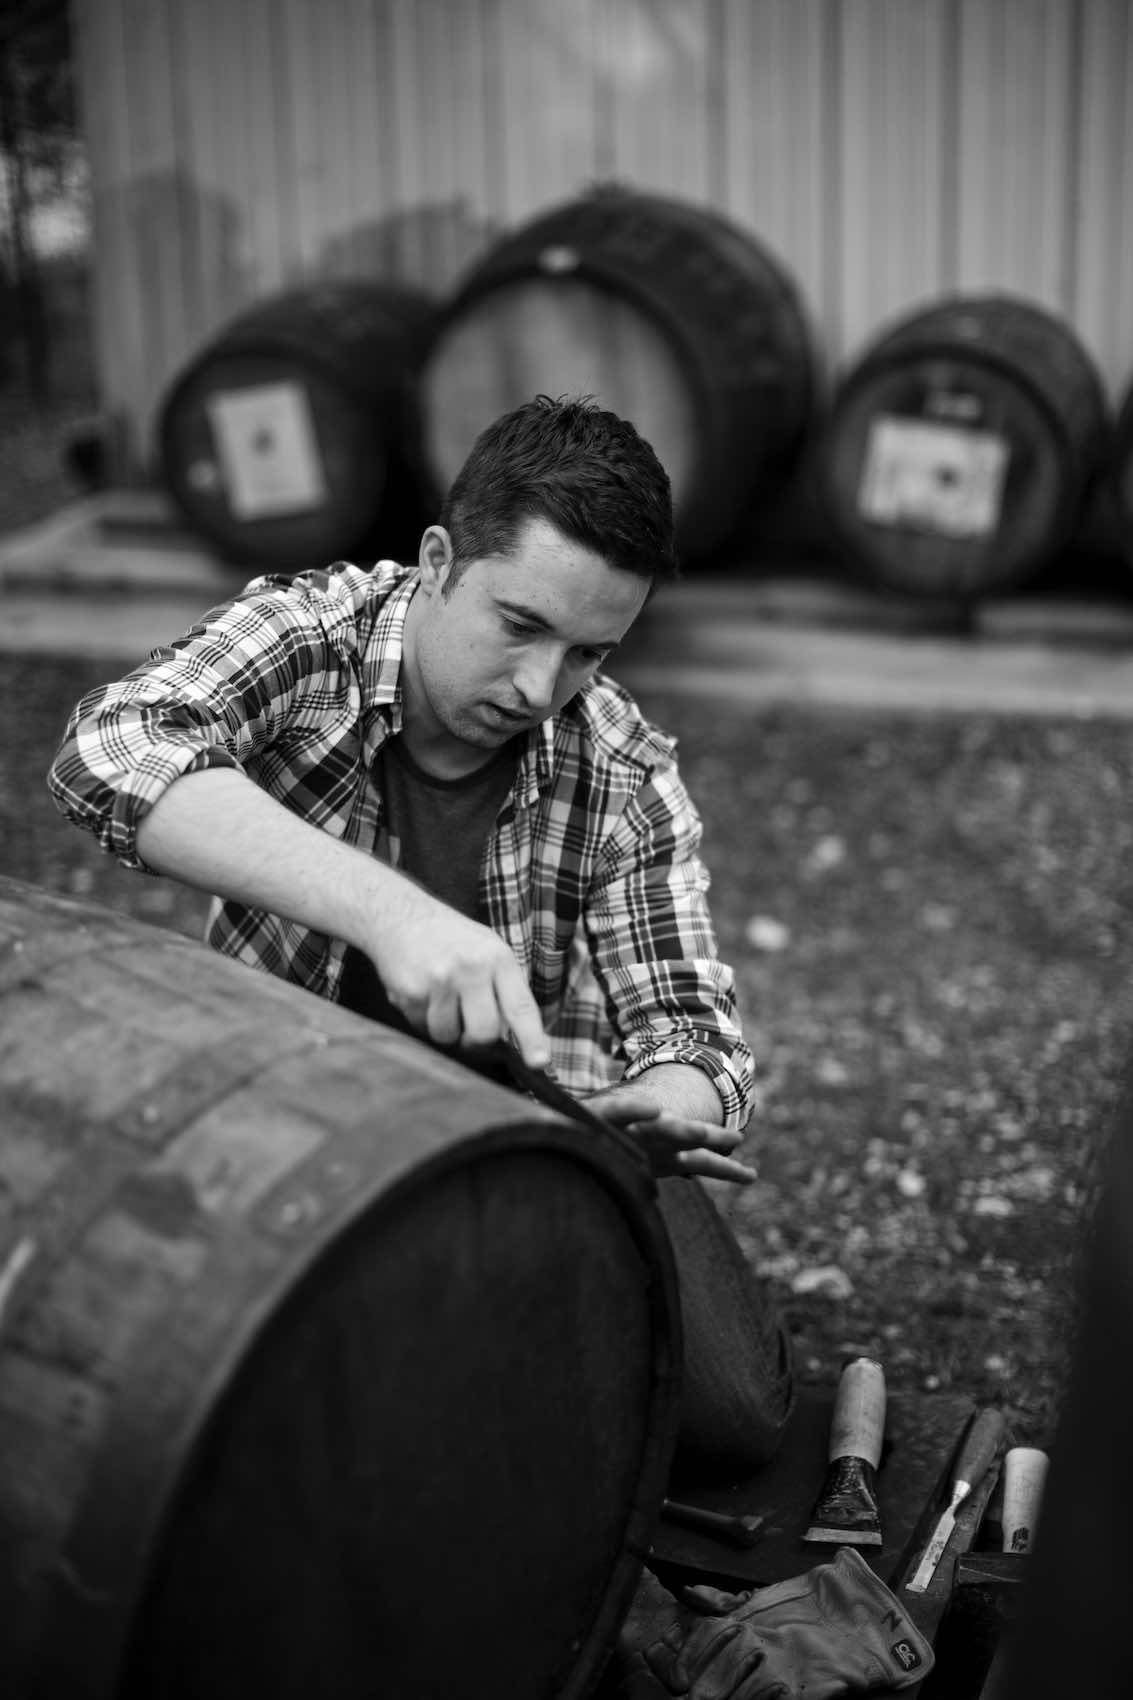 Jody Horton Photography - Worker crafting a wood barrel, shot in B&W.